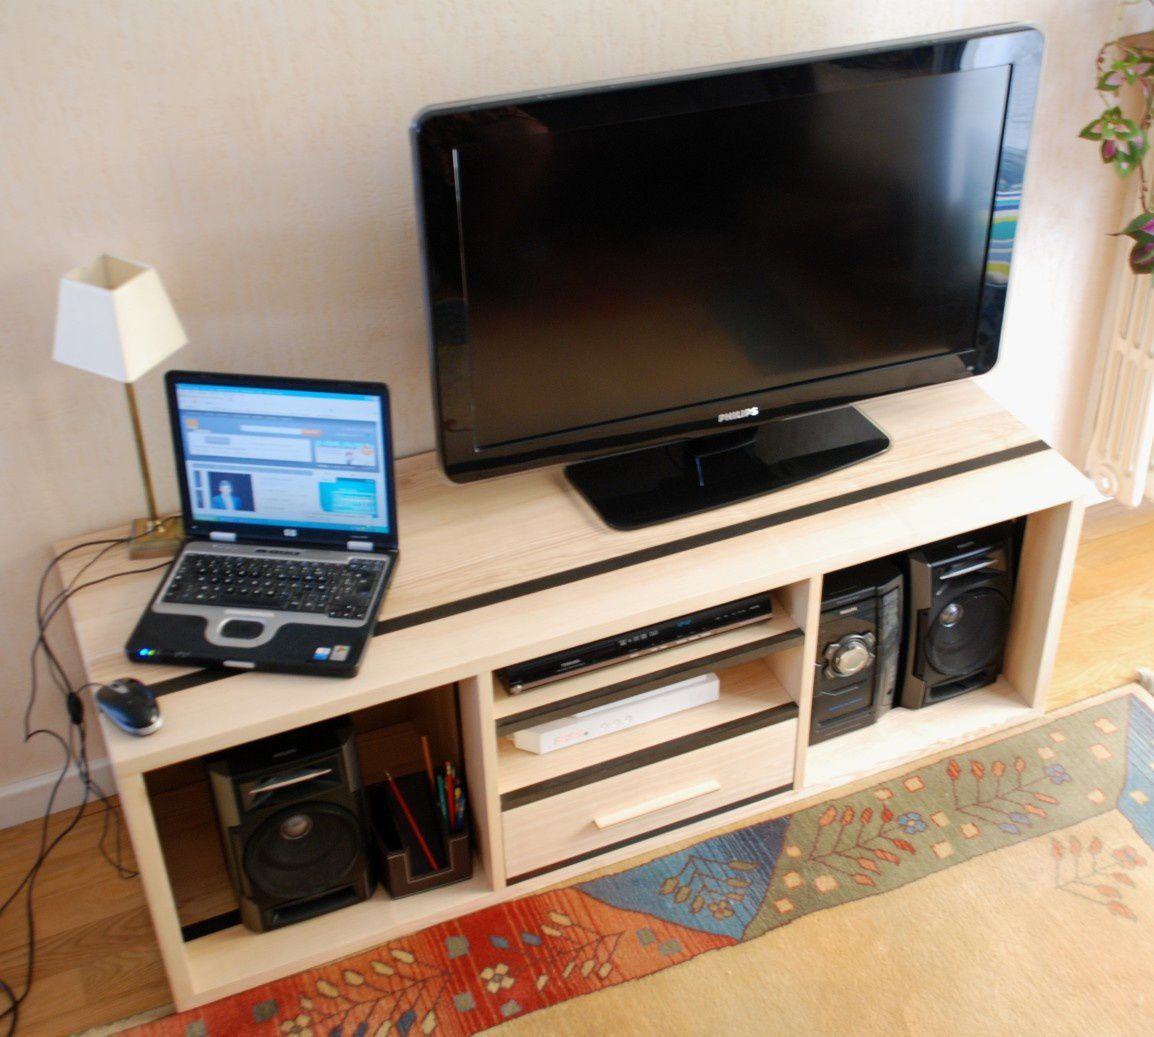 Album meuble tv hifi contemporain atelier pourquoi pas - Meuble tv multimedia ...